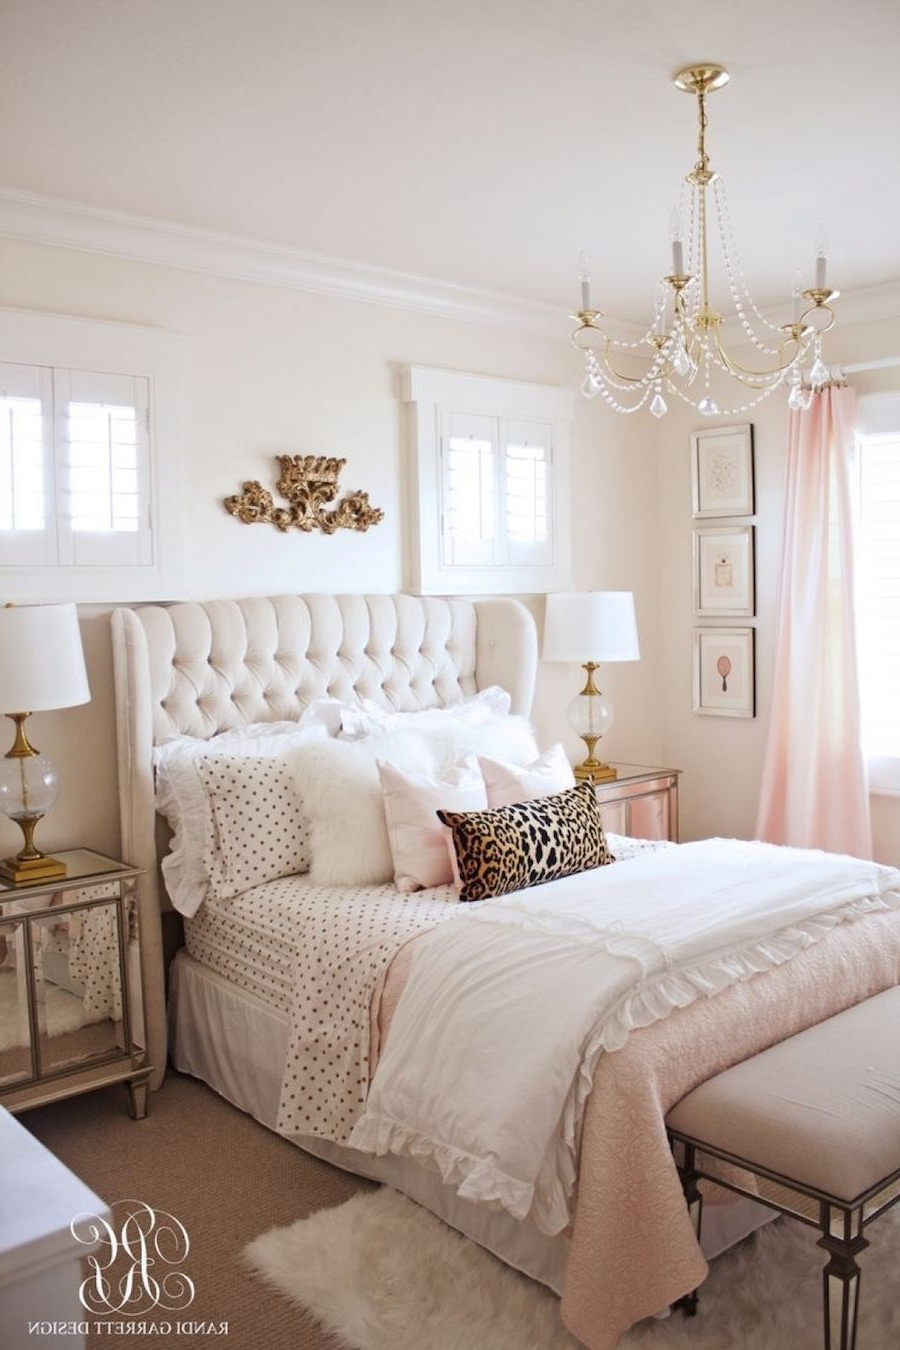 12 Dreamy Decor Ideas For The Bedroom Home Decor Bedroom